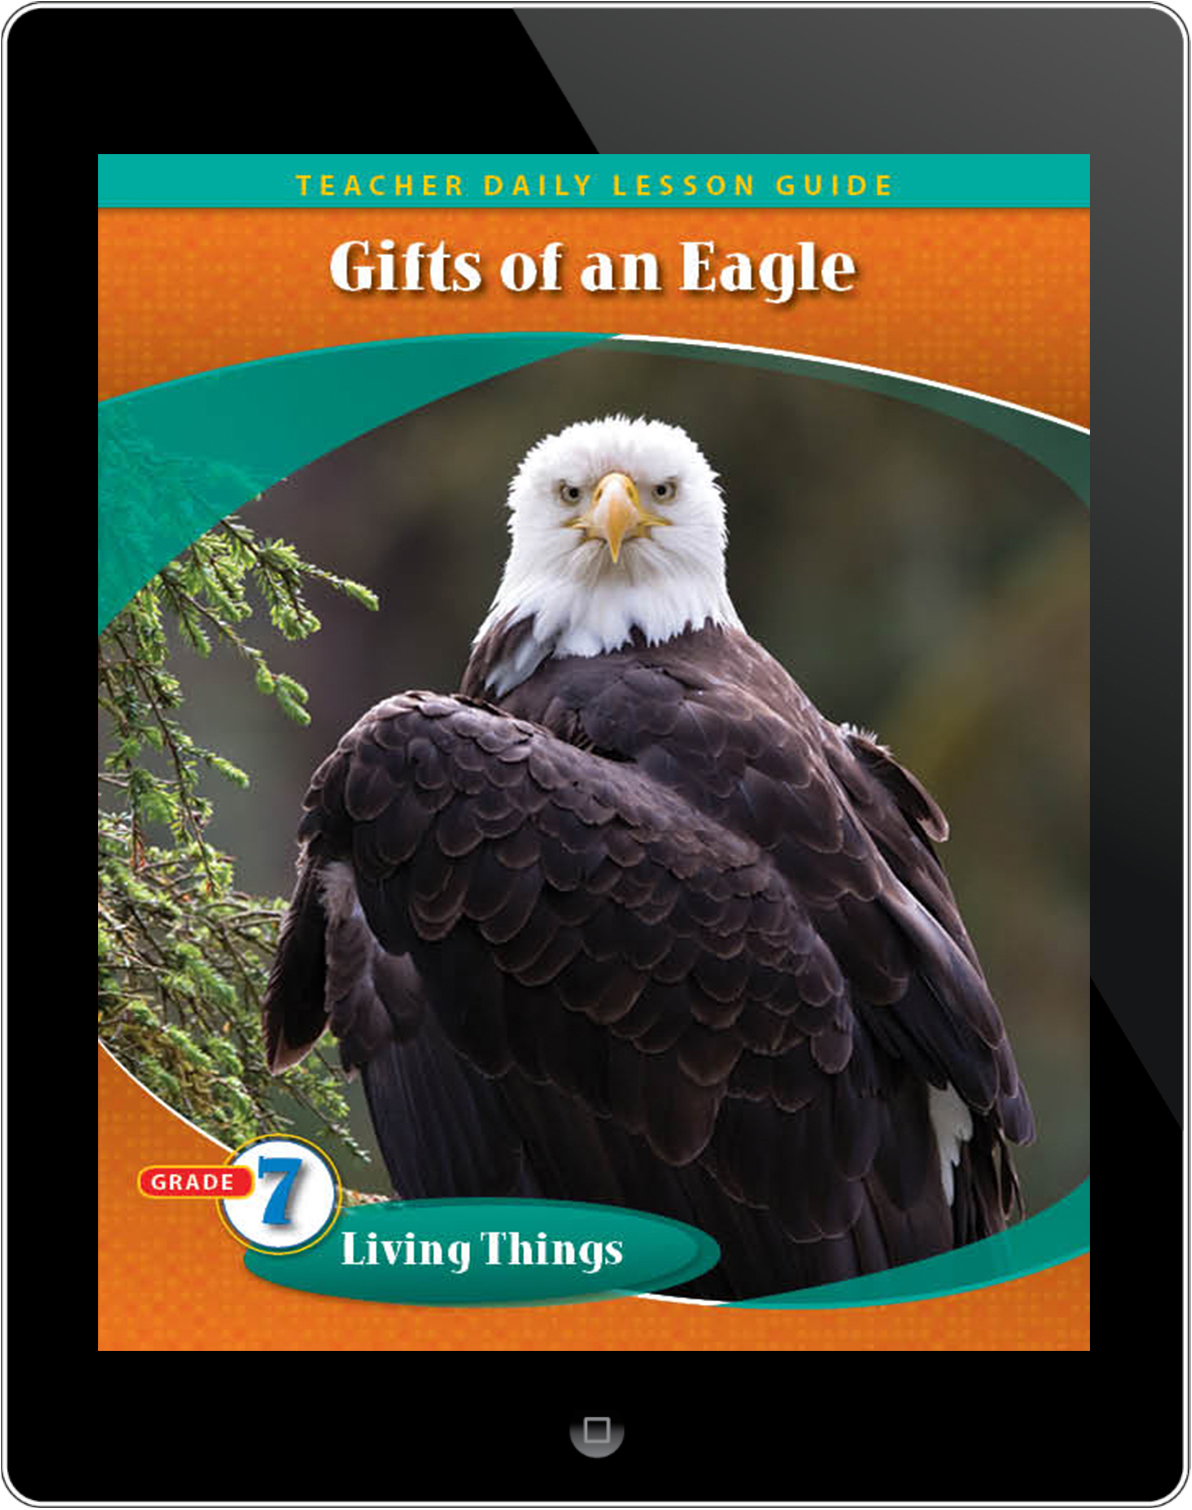 Pathways2.0 Grade 7 Living Things Unit: Gifts of an Eagle Daily Lesson Guide 5 Year License